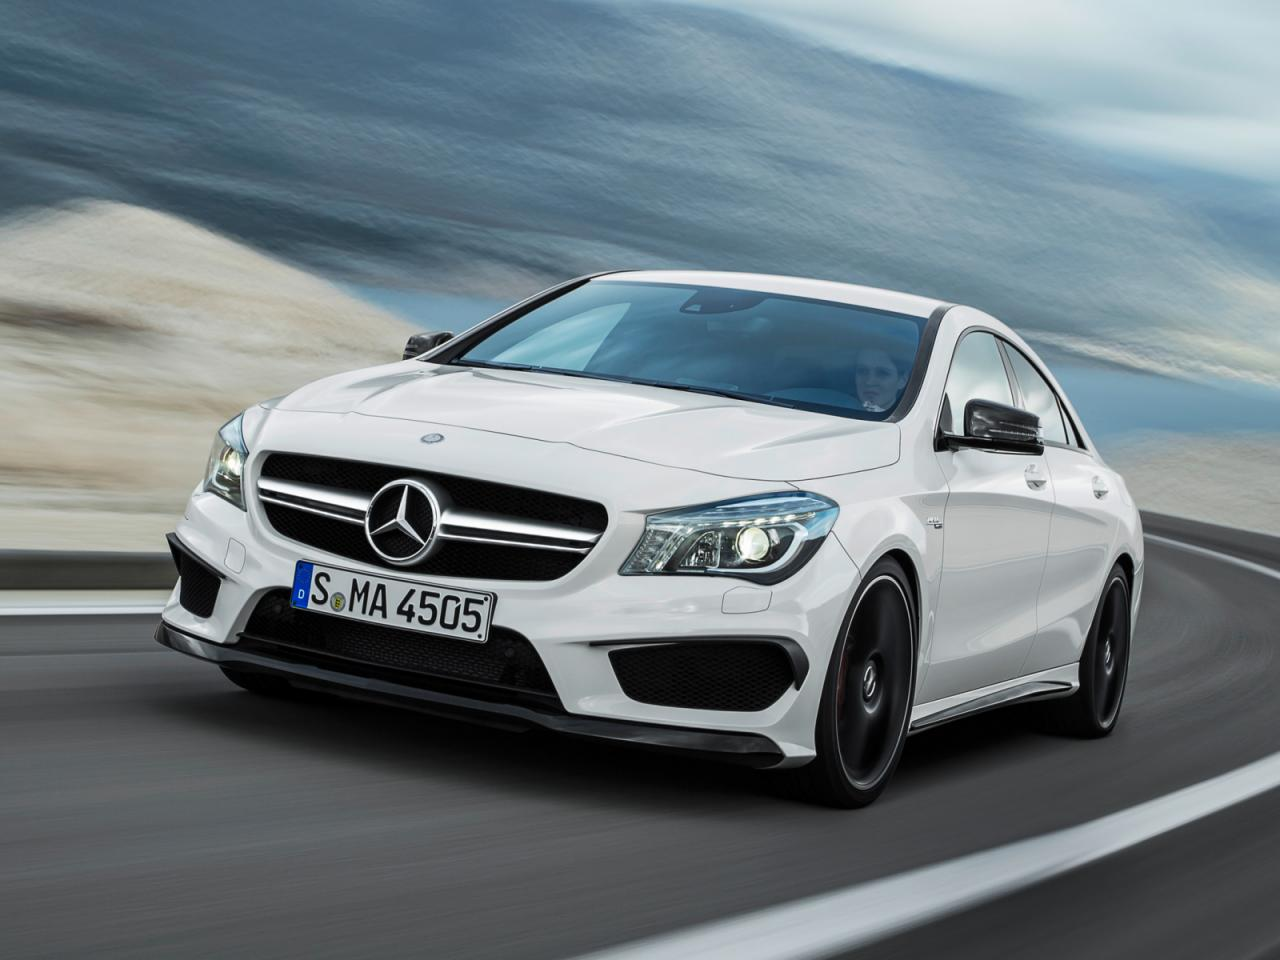 3672613611715012321 2014 Mercedes Benz CLA 45 AMG Official Photos Revealed